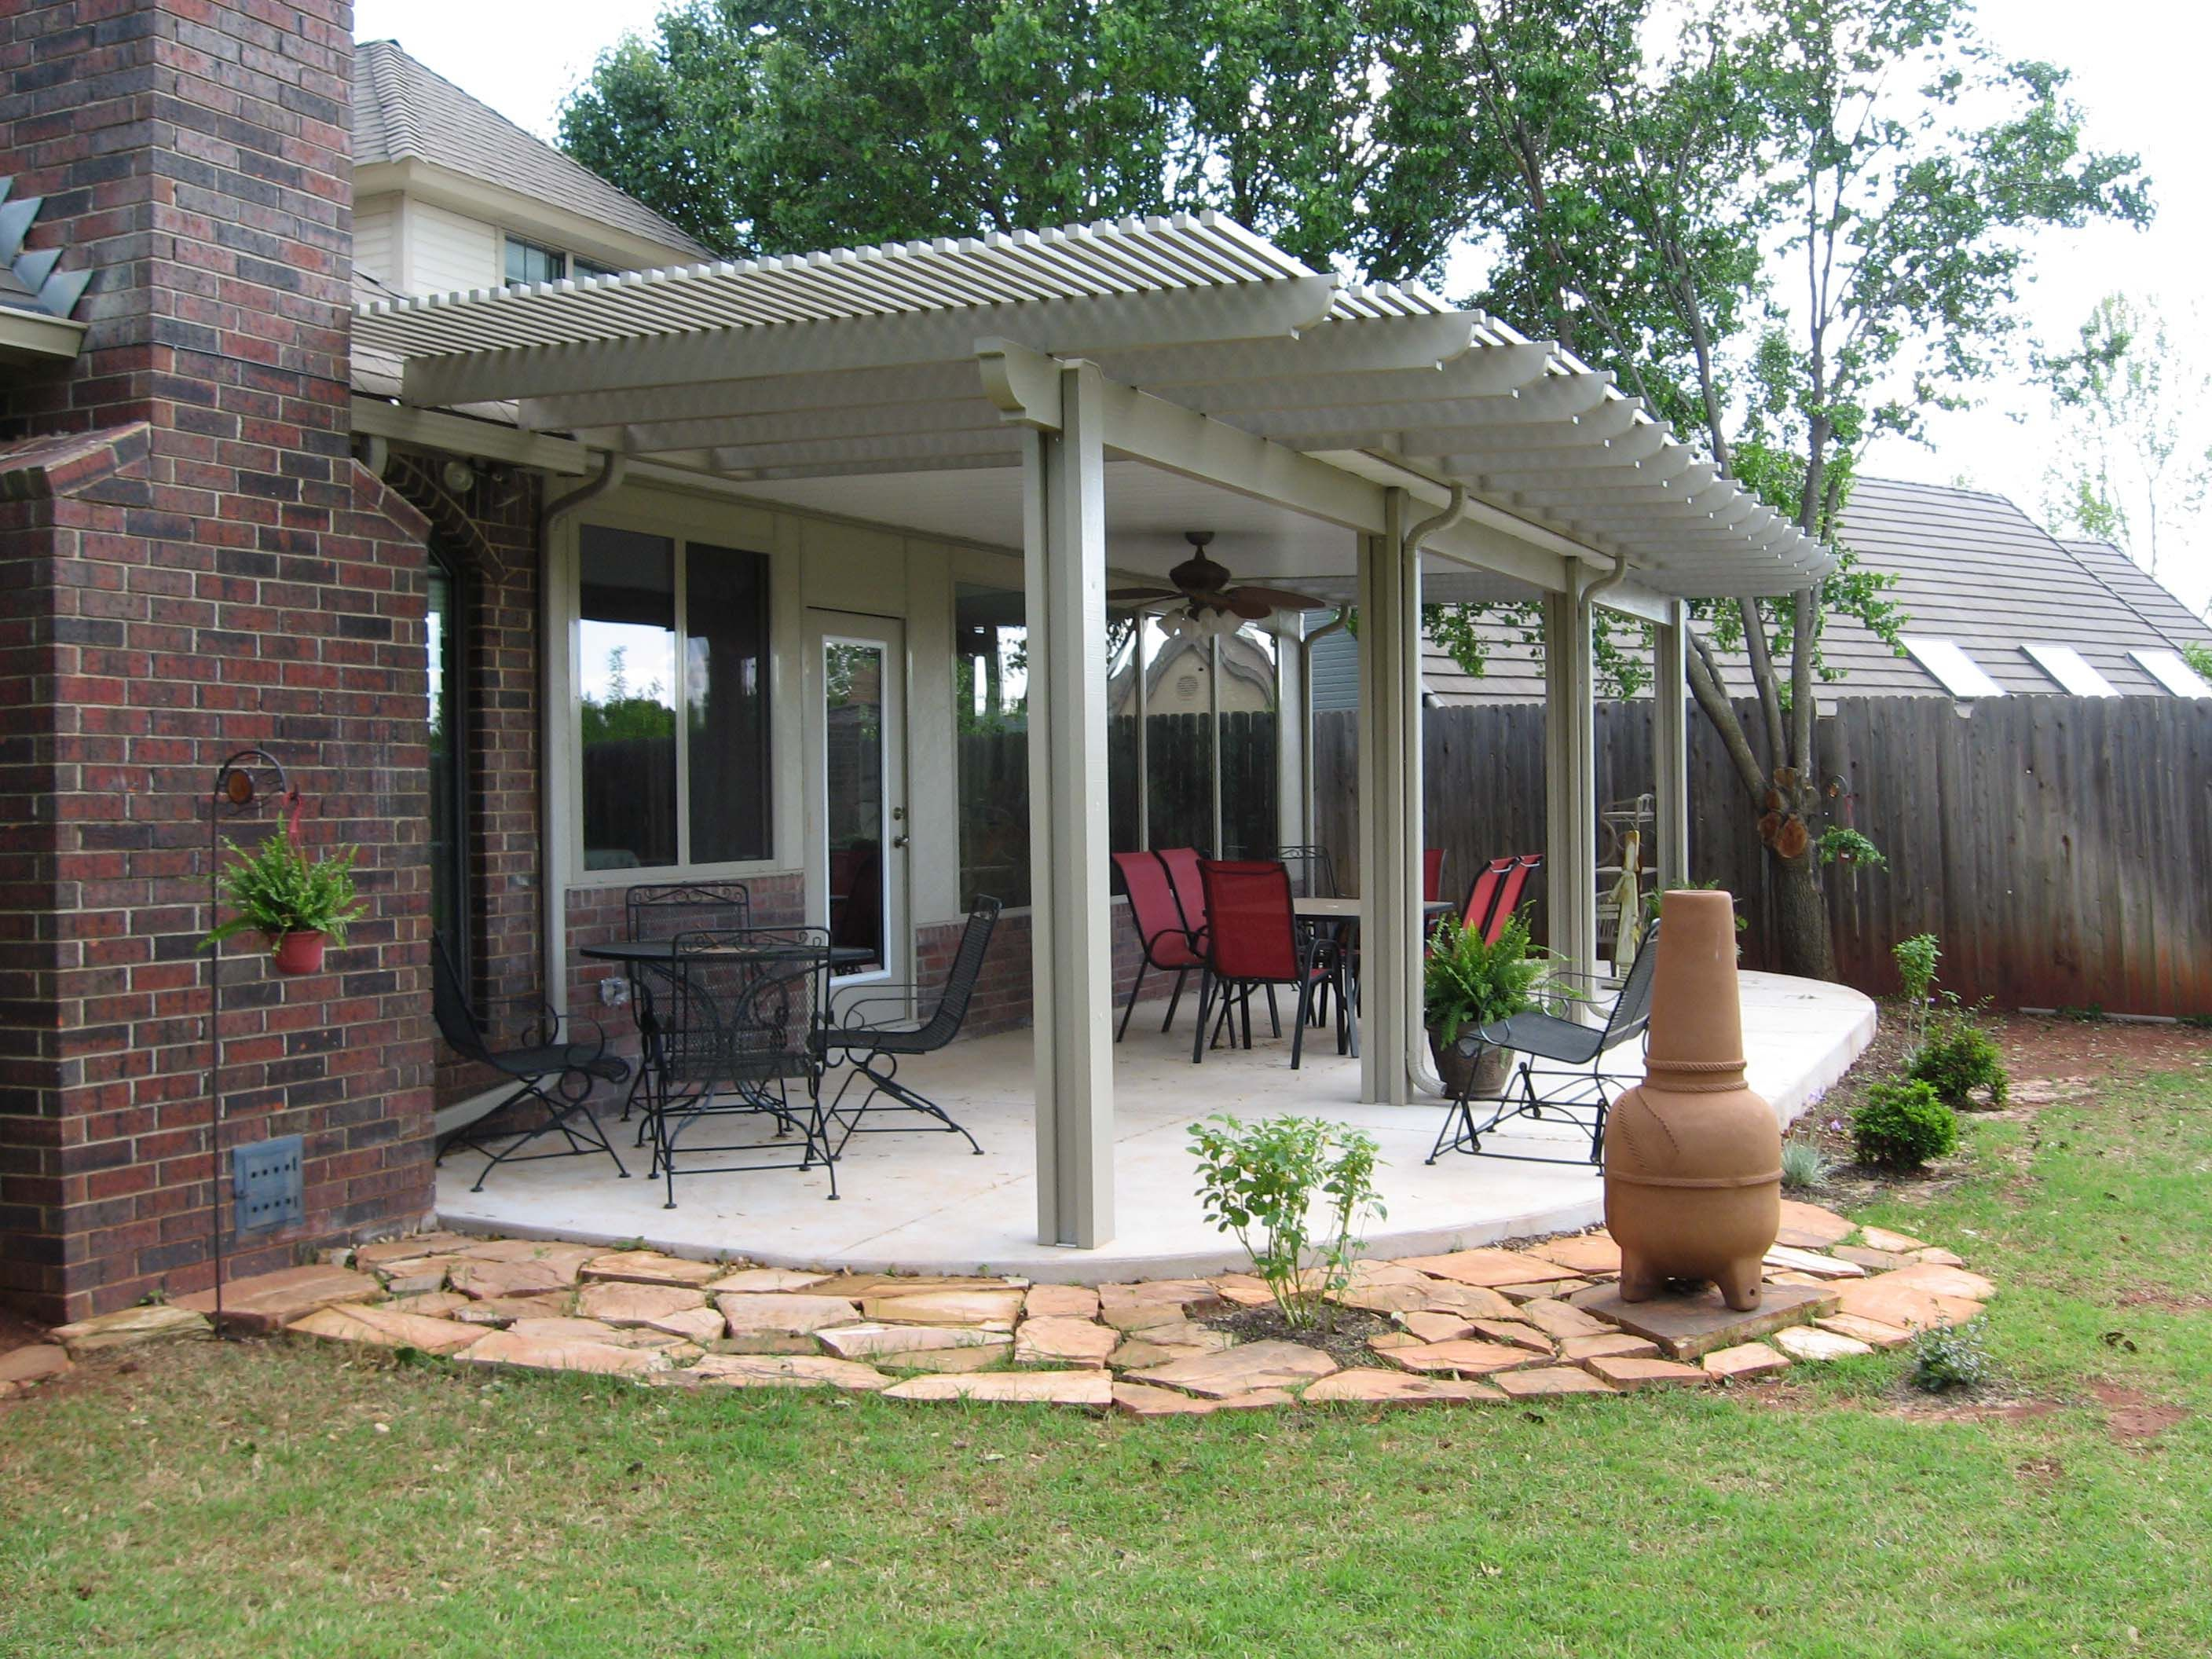 Arbor Design Ideas arbor design ideas metal arbors Patio Arbor Design Patio Covers Amp Arborsthumbs